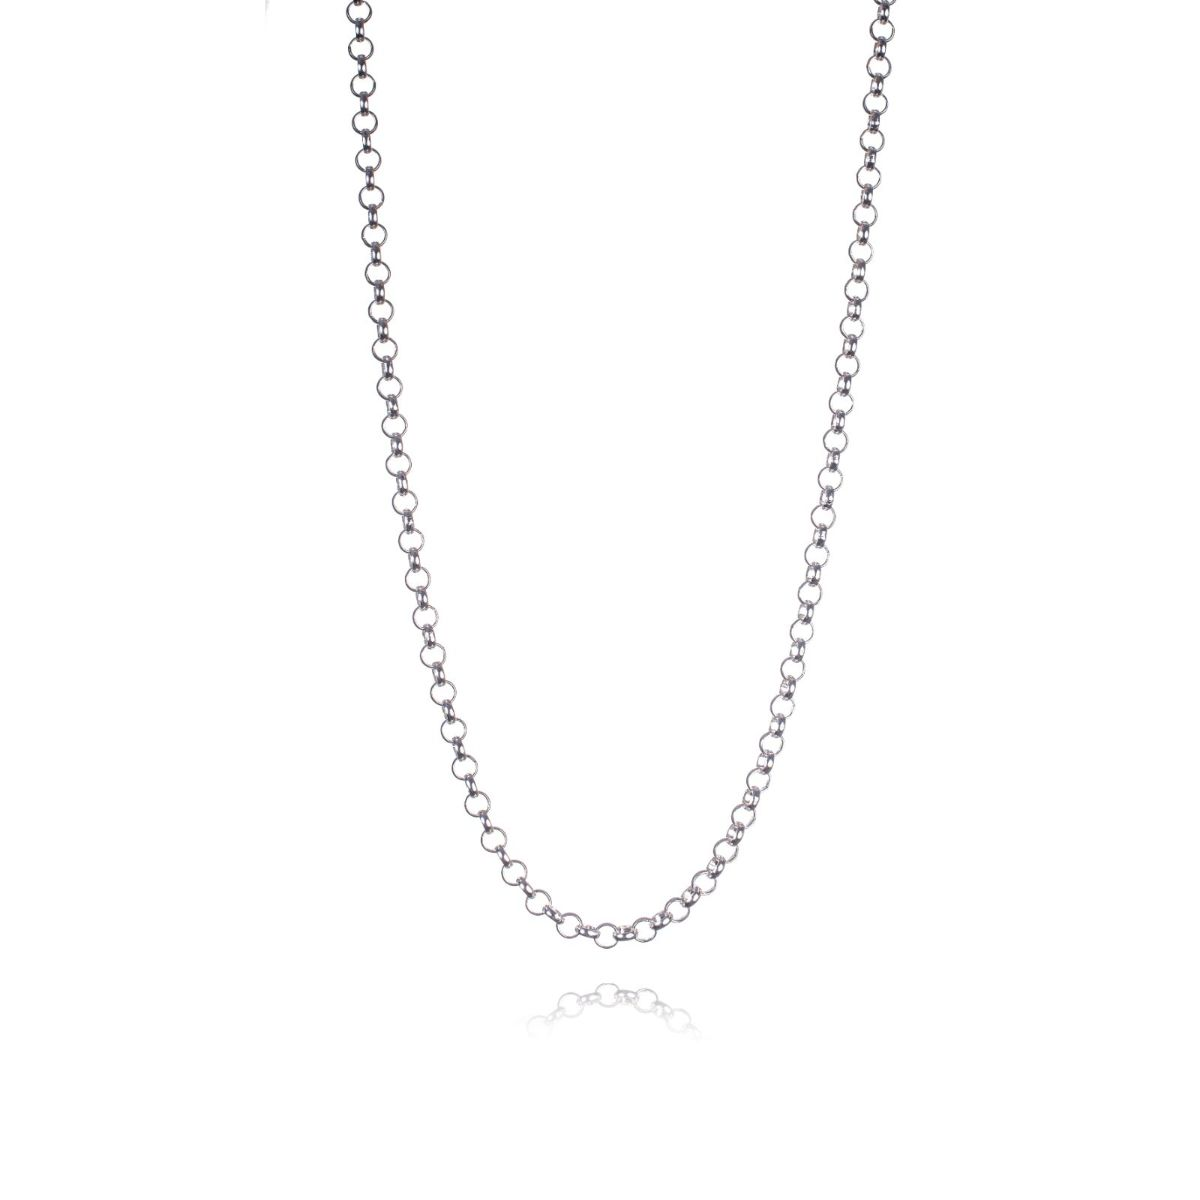 Mallorca long necklace small silver plated round link chain